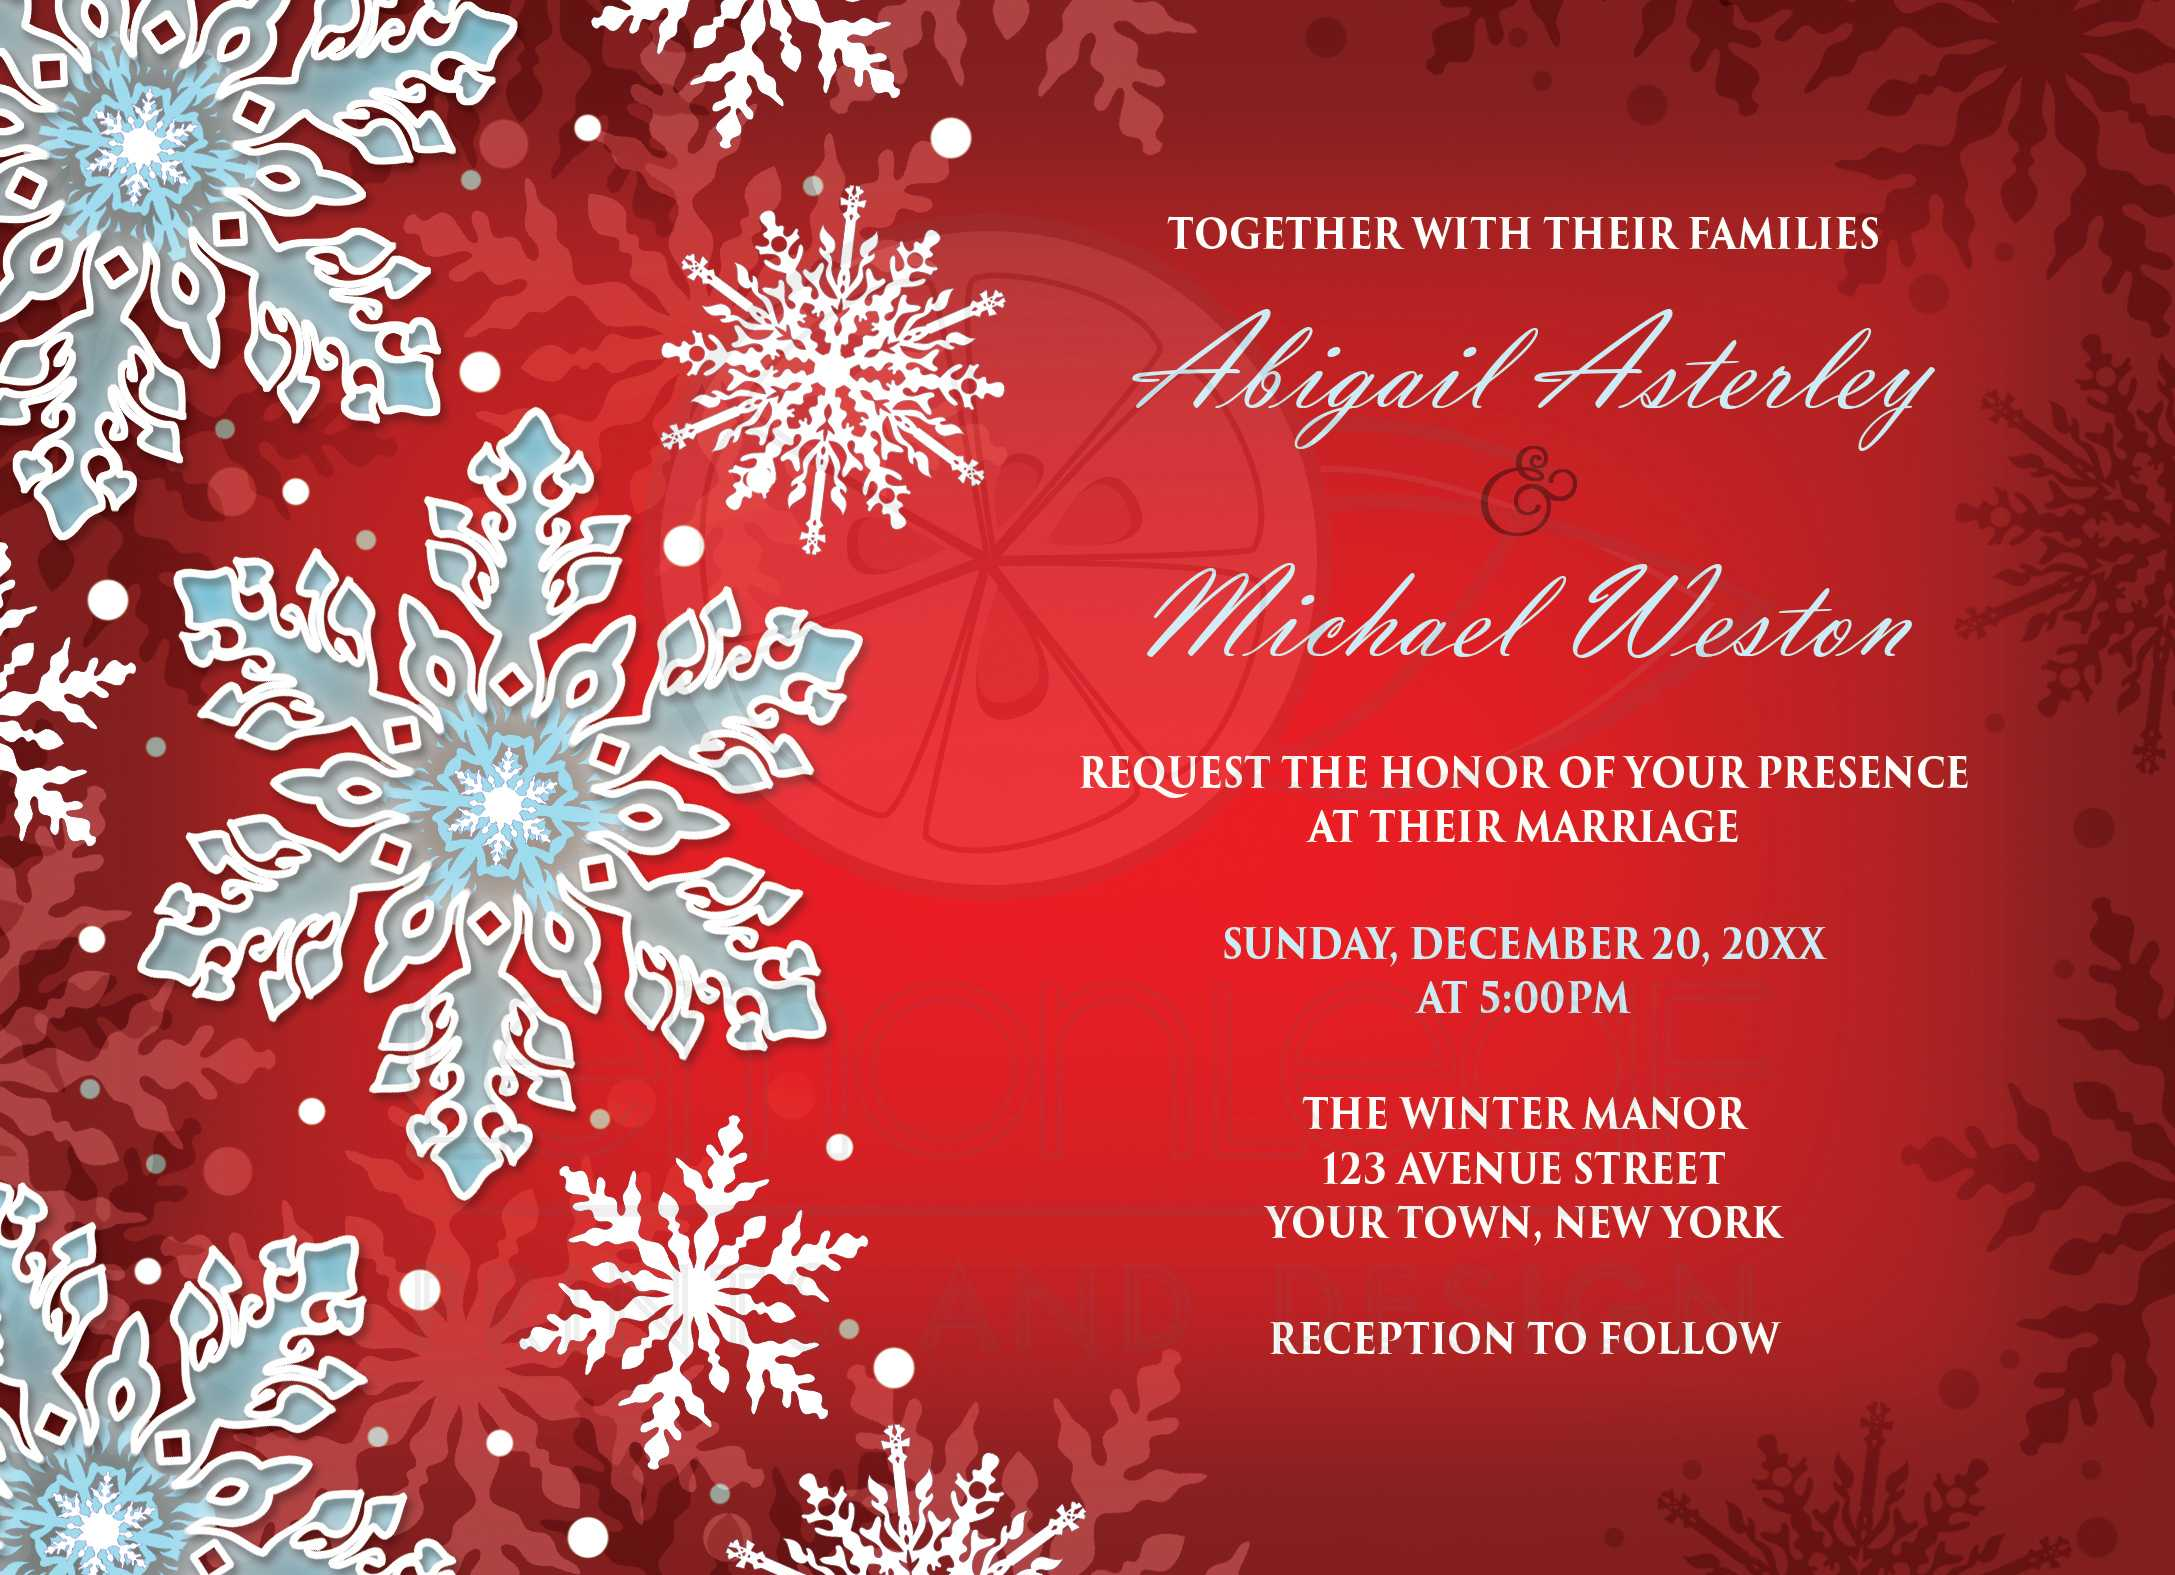 Wedding Invitations - Royal Red White Blue Snowflake